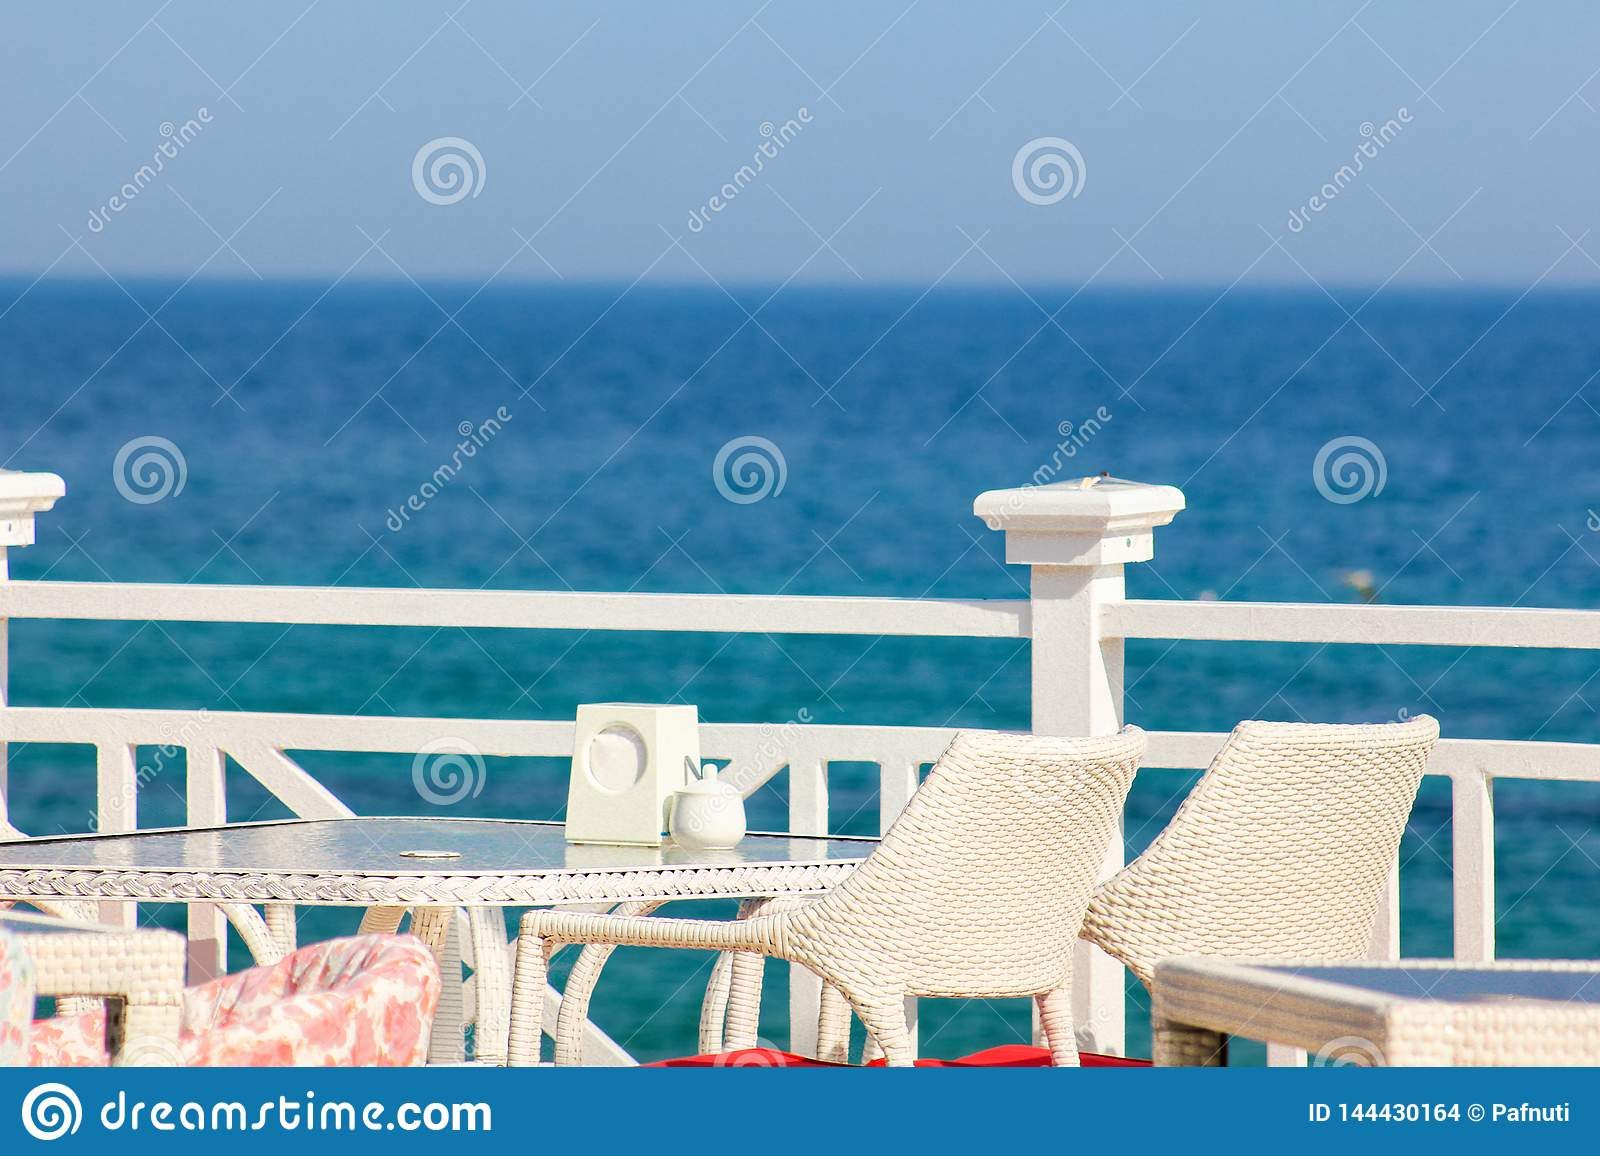 Greece, Santorini. Restaurant with served table in seafront of Aegean sea on Santorini Cyclades island with breathtaking